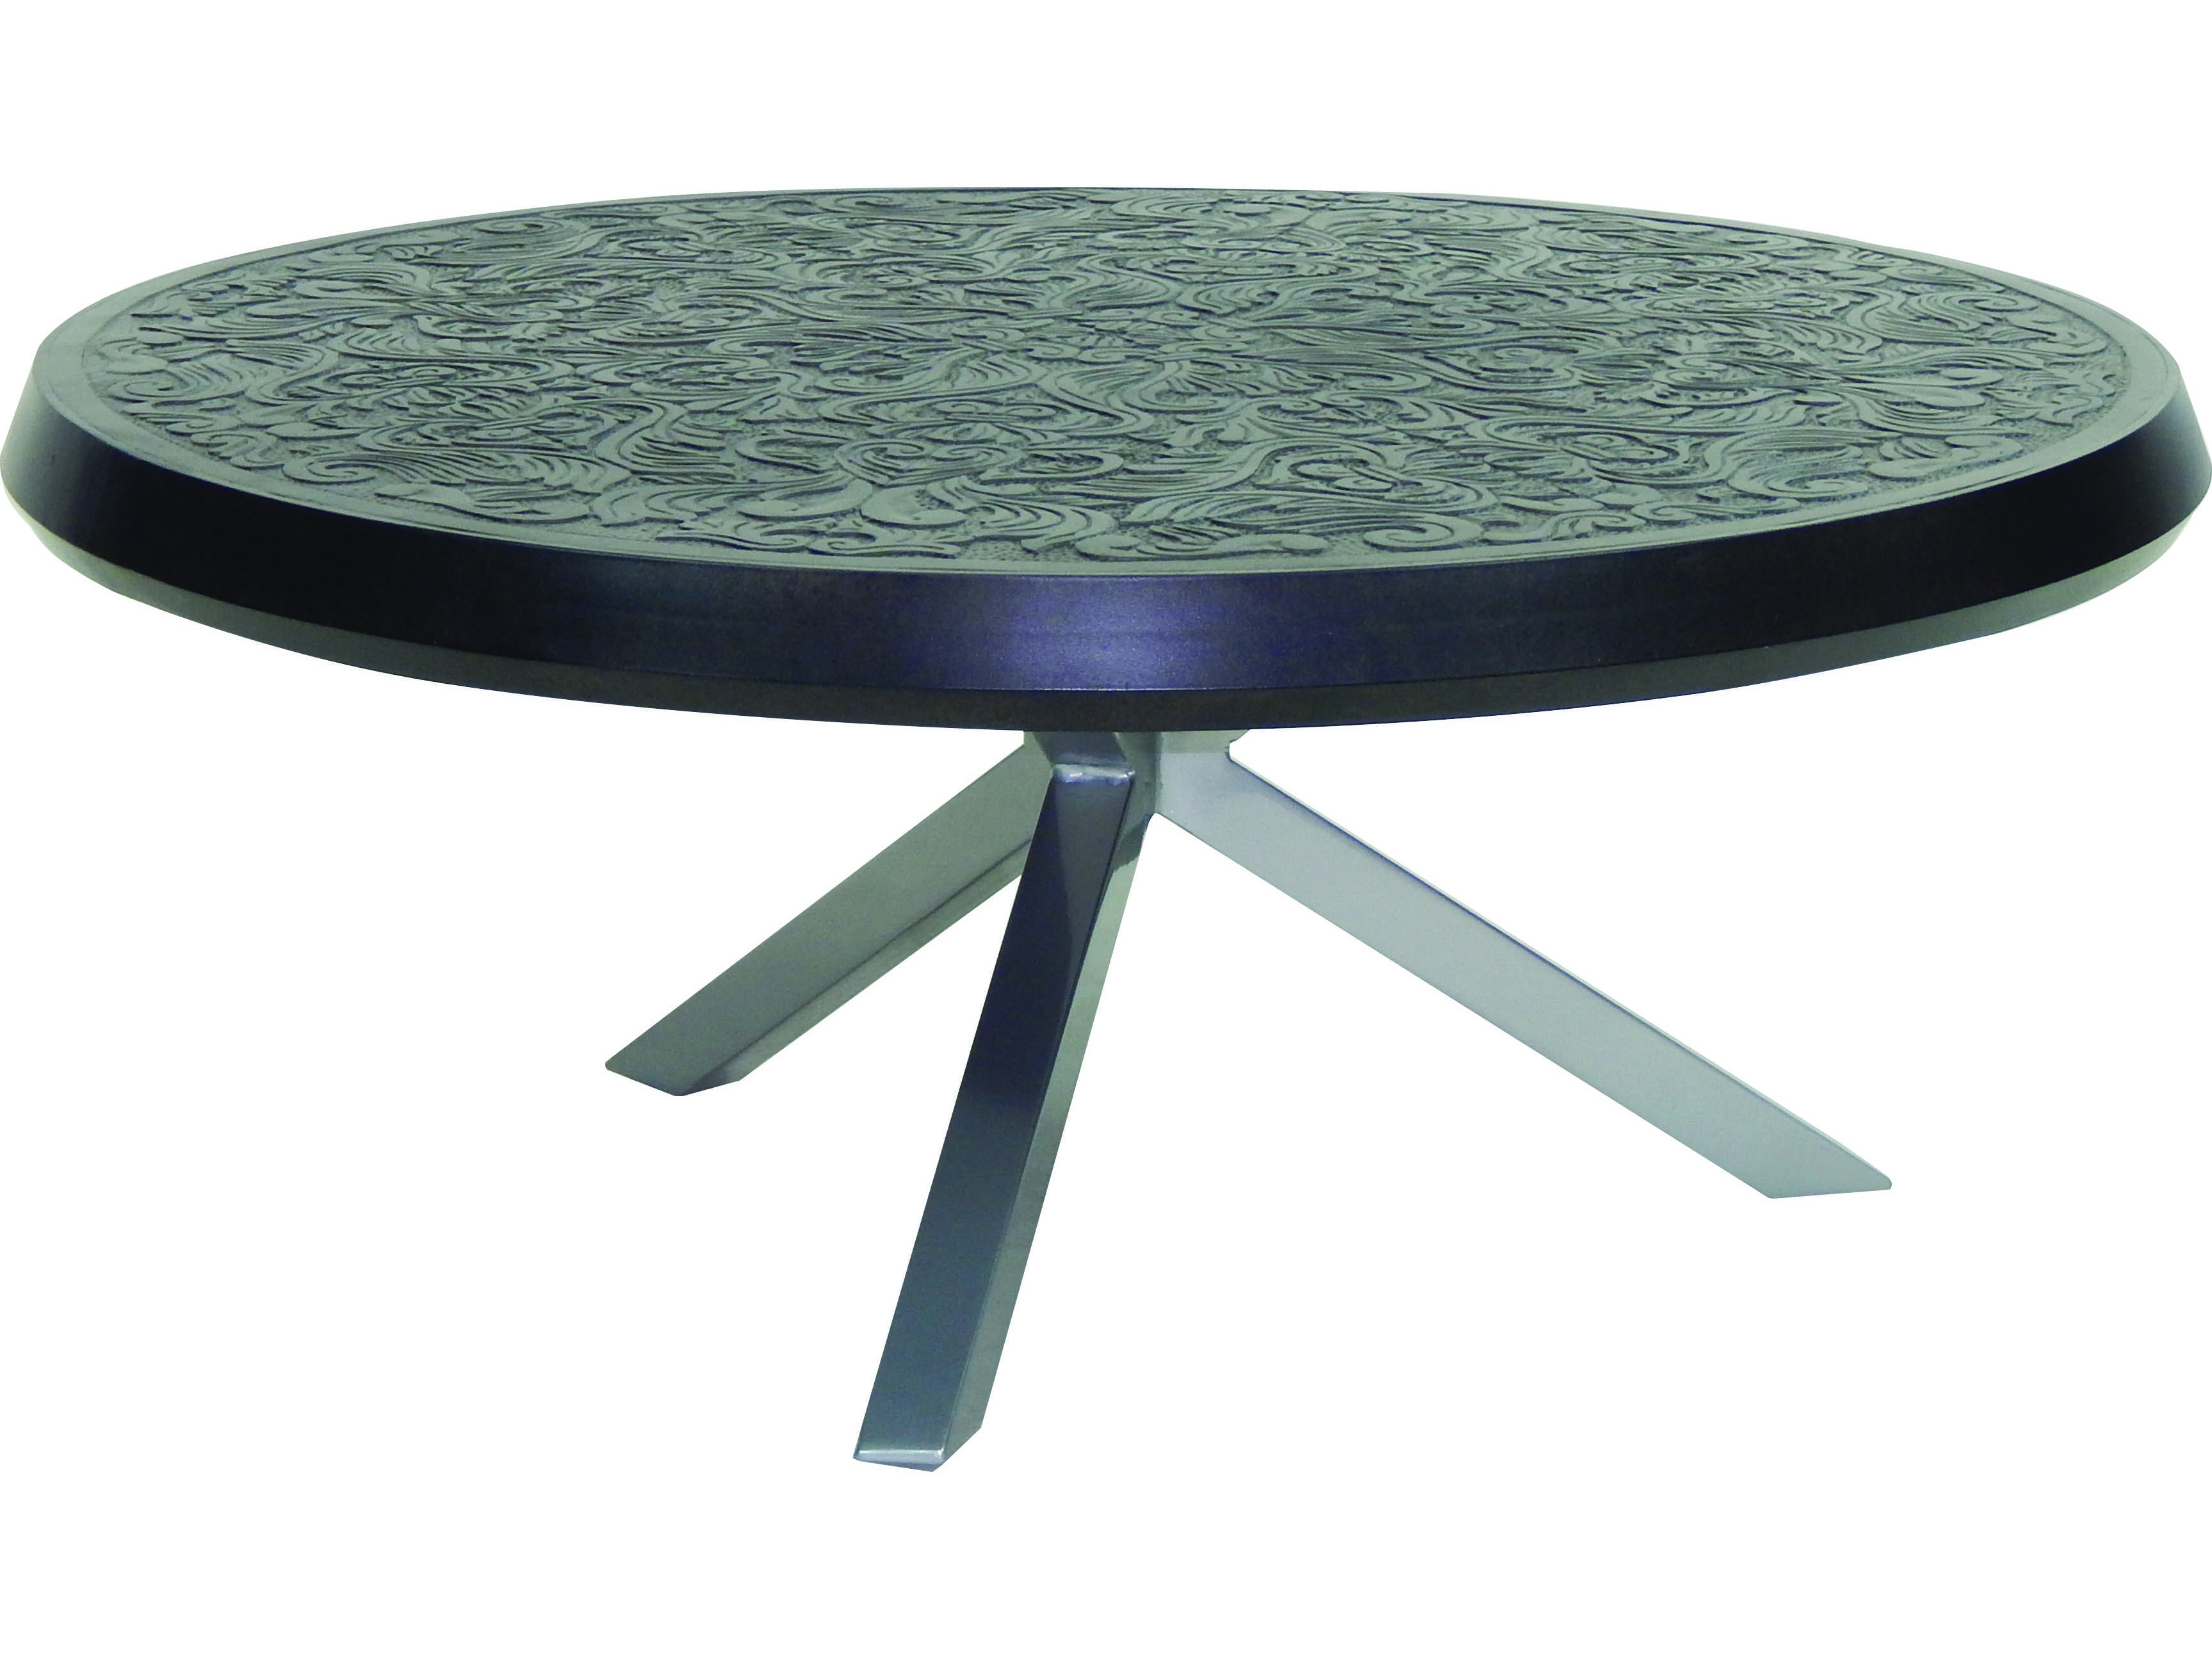 Castelle Altra Cast Aluminum 44 Round Coffee Table Tcc42